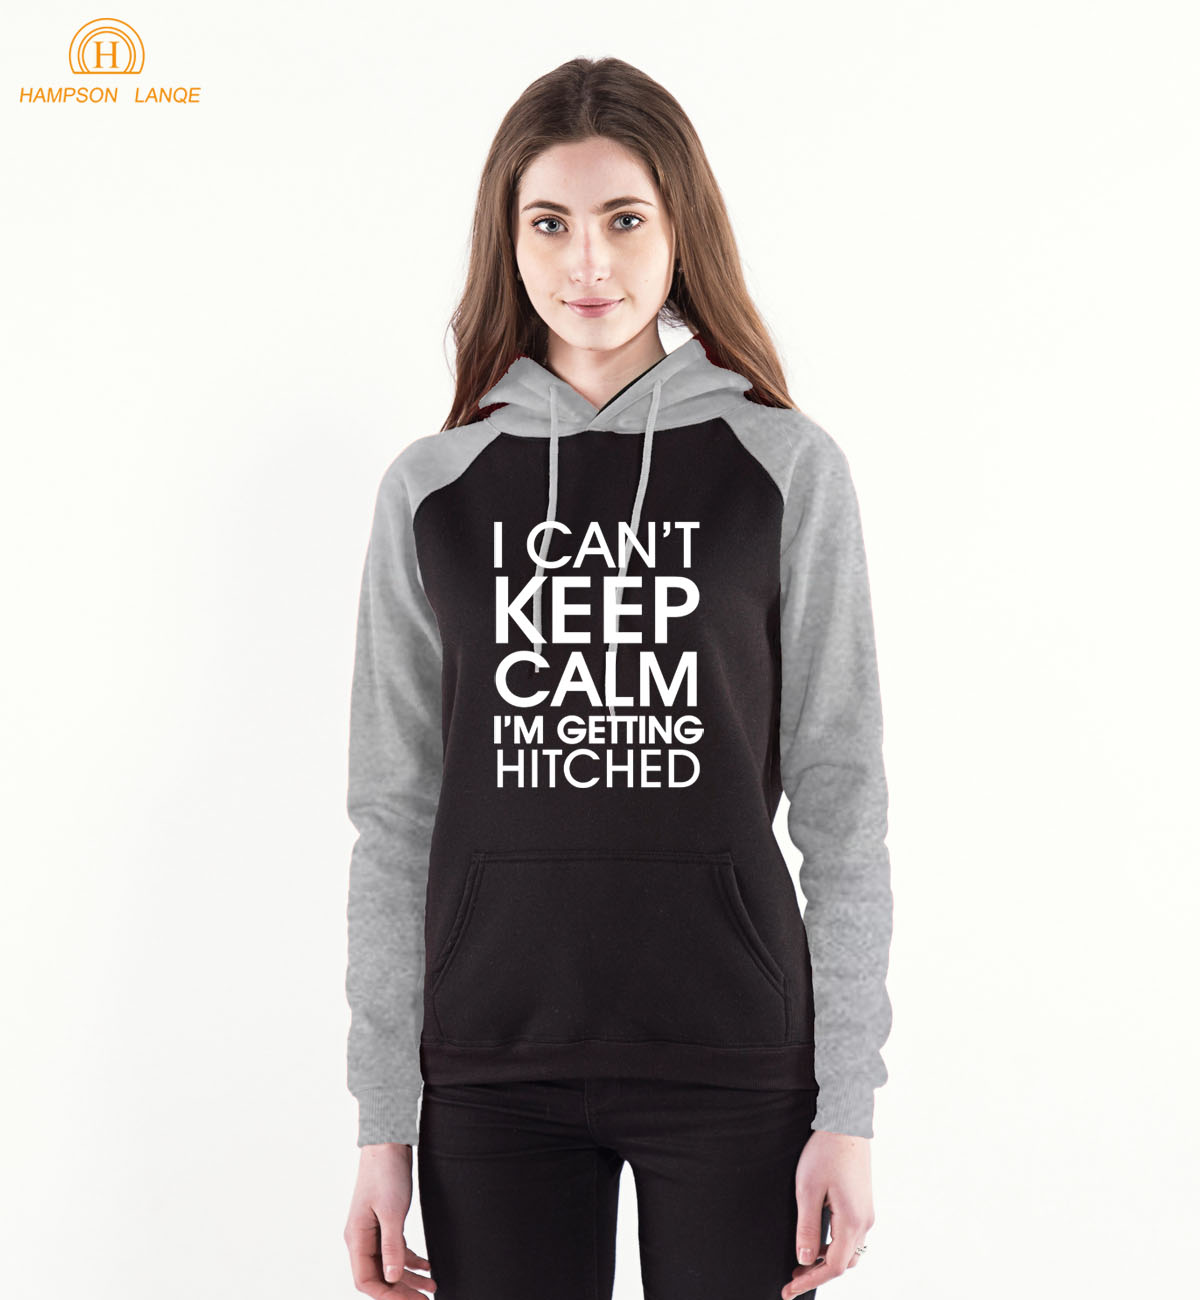 I Cant Keep Calm Im Getting Hitched Funny Sweatshirts 2018 Spring Autumn Women Hoodie Long Sleeve Hooded Warm Fleece Pullovers